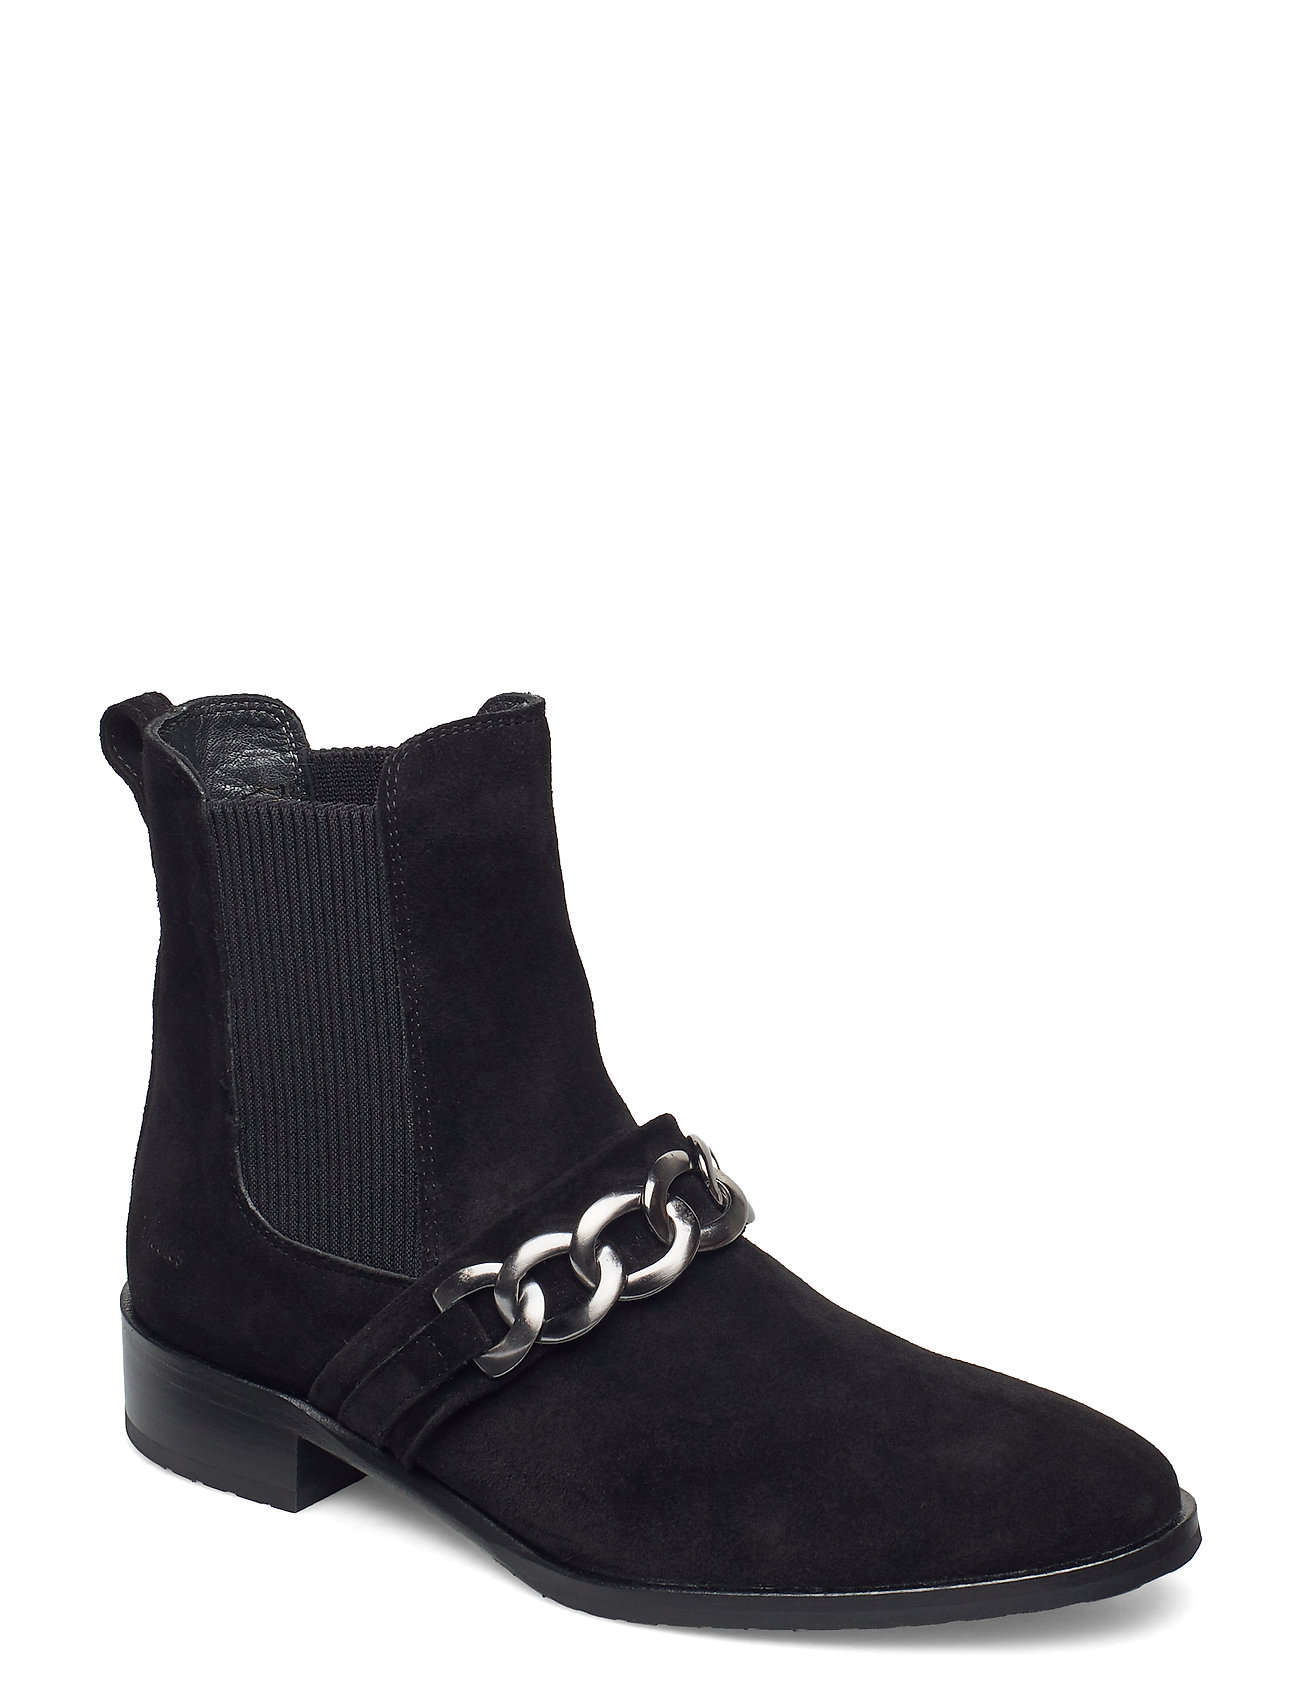 Image of Booties - Flat - With Elastic Shoes Boots Ankle Boots Ankle Boot - Flat Sort ANGULUS (3472124747)